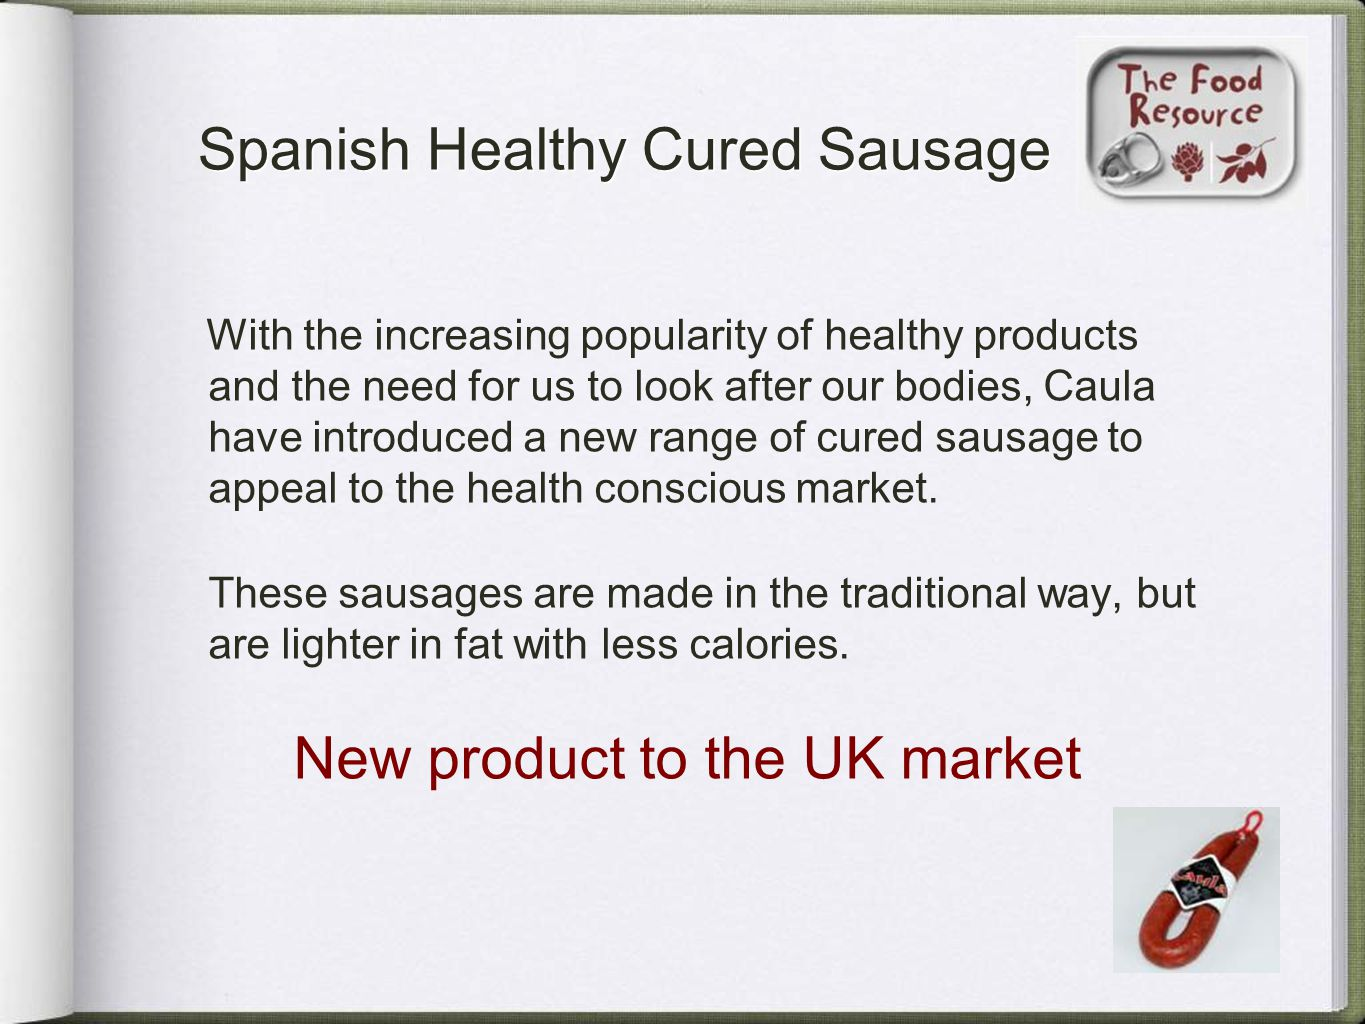 With the increasing popularity of healthy products and the need for us to look after our bodies, Caula have introduced a new range of cured sausage to appeal to the health conscious market.